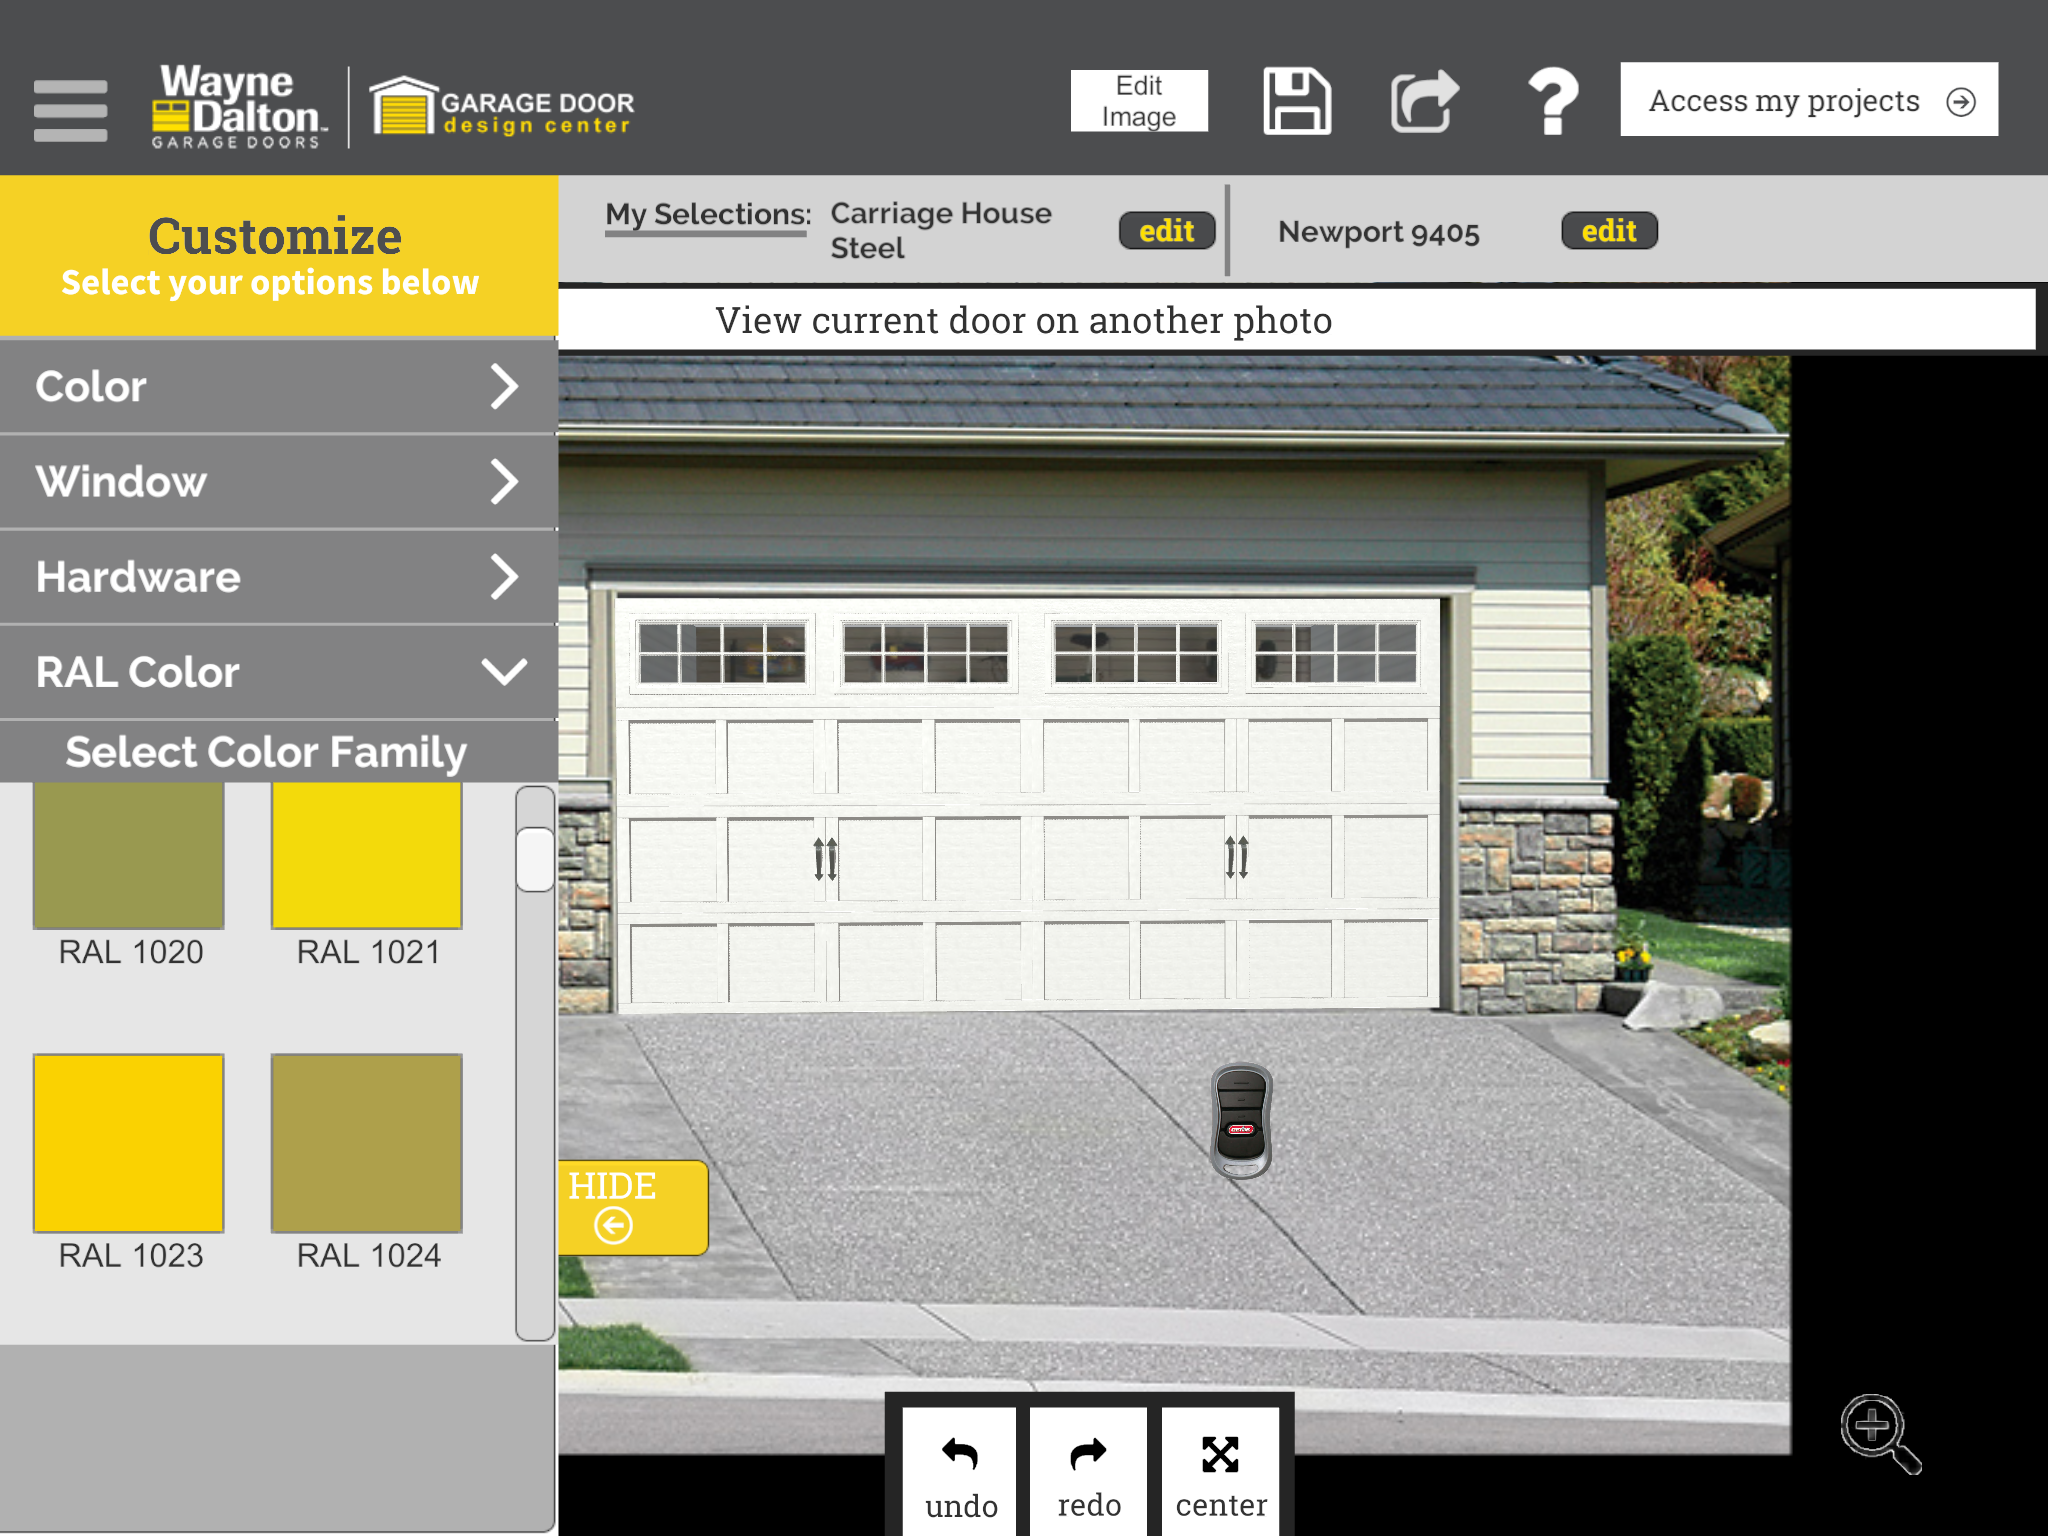 Check Out The Garage Door I Designed Using The Wayne Dalton App Door Images Steel House Ral Colours